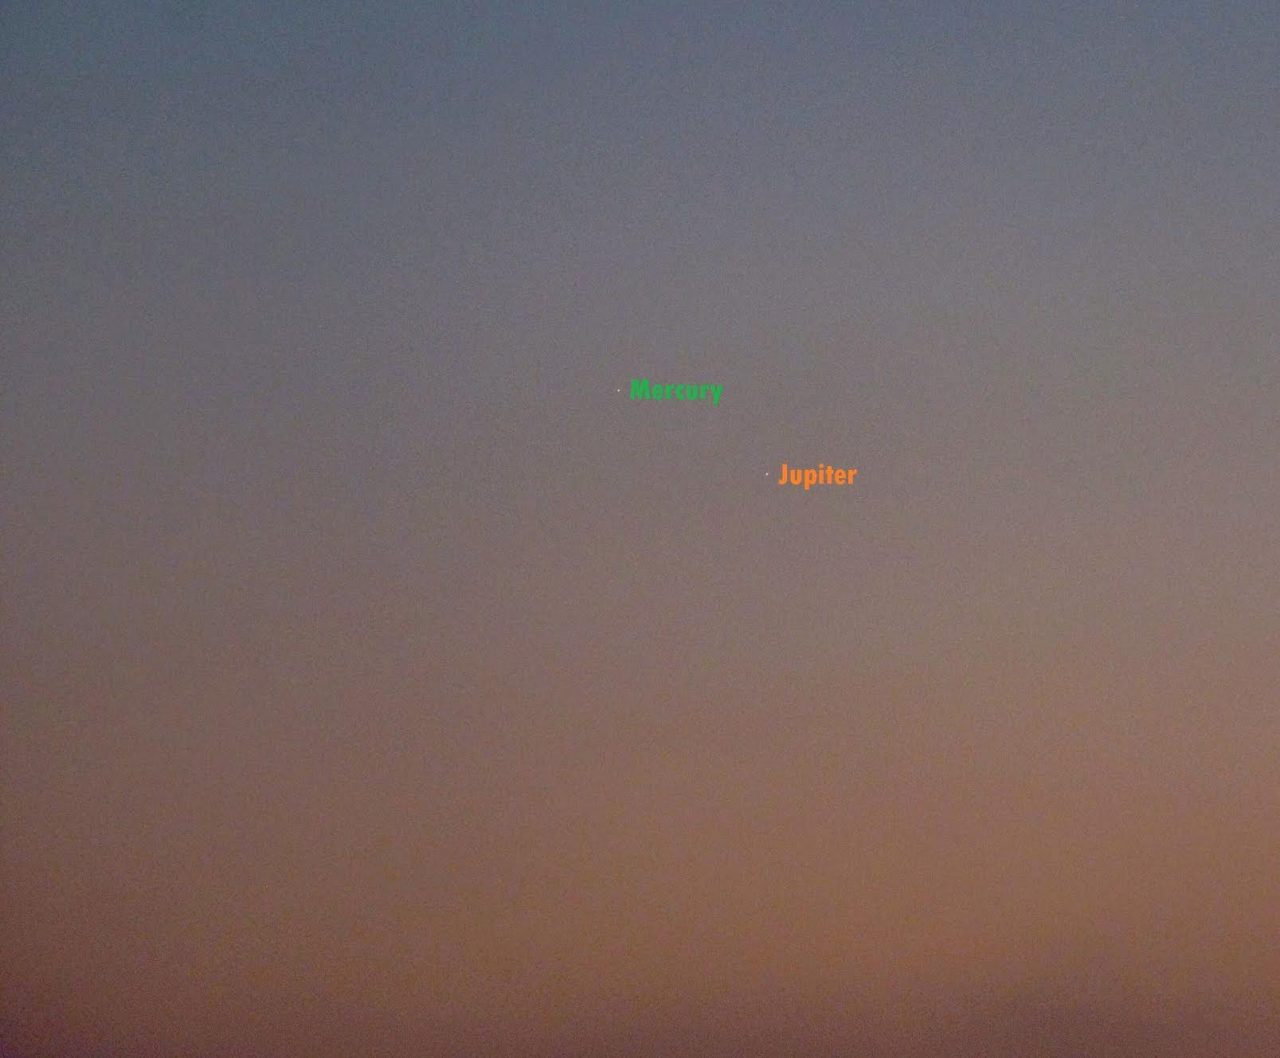 José Luis Ruiz in Almería, Spain caught the pair on the morning of October 11, 2016 ... like two little stars from 4th to 5th magnitude of the night.